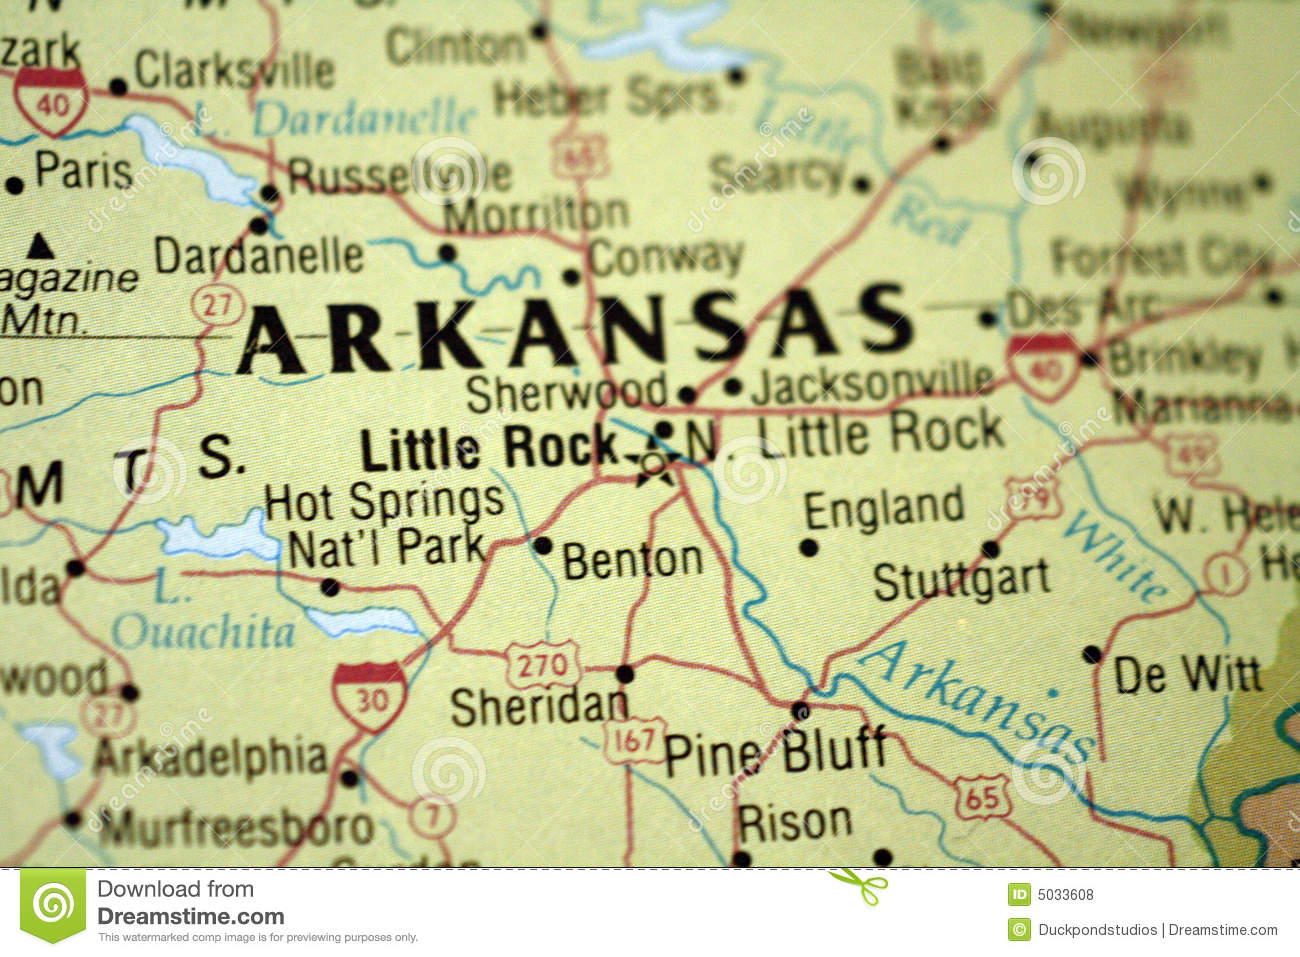 Map Of Little Rock Arkansas Royalty Free Stock Photos - Image: 5033608 LITTLE ROCK MAP